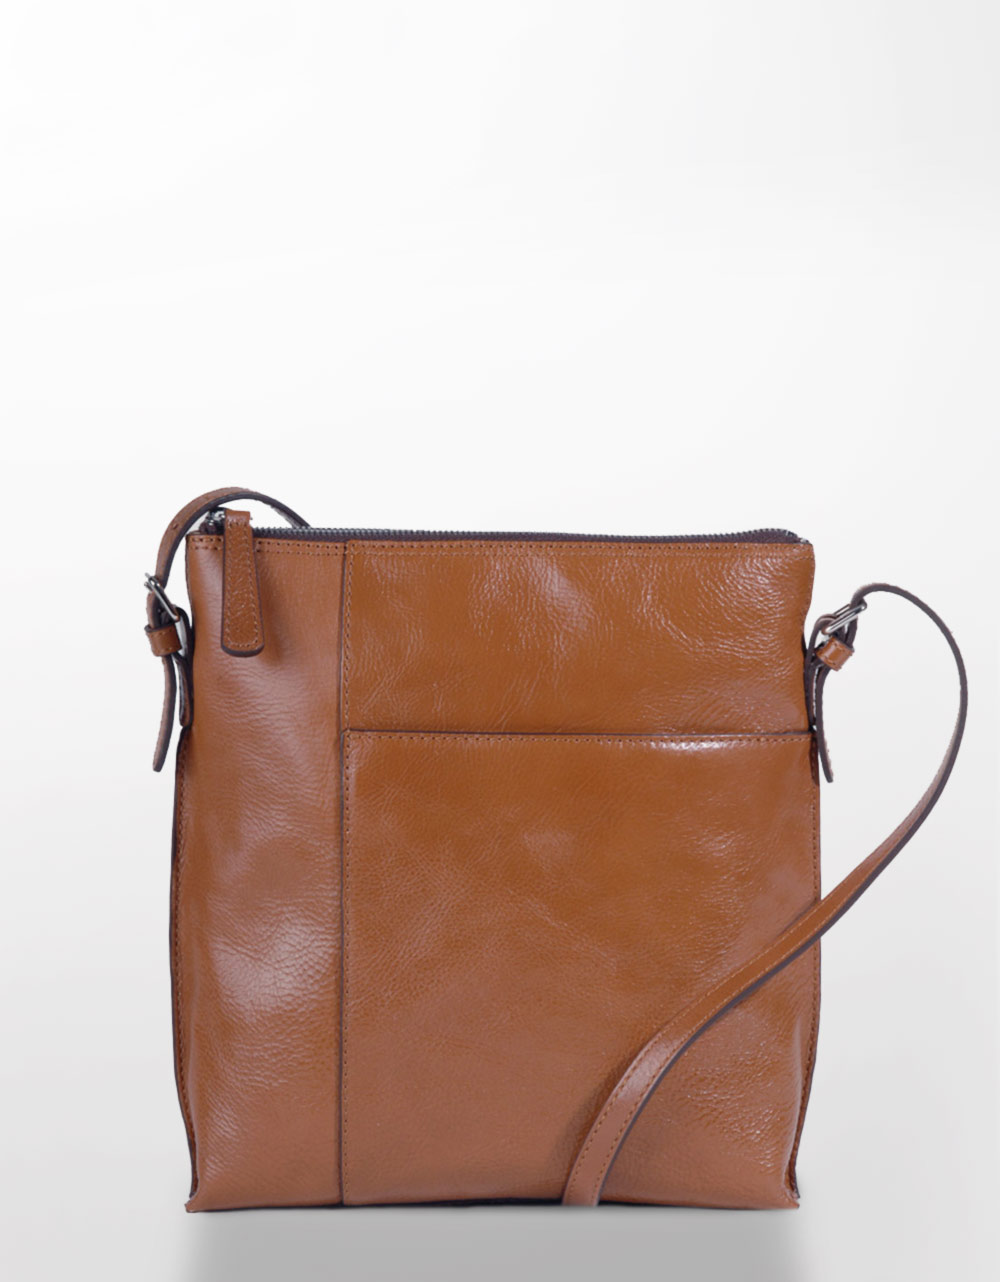 Hobo international Alessa Leather Cross-Body Bag in Brown | Lyst